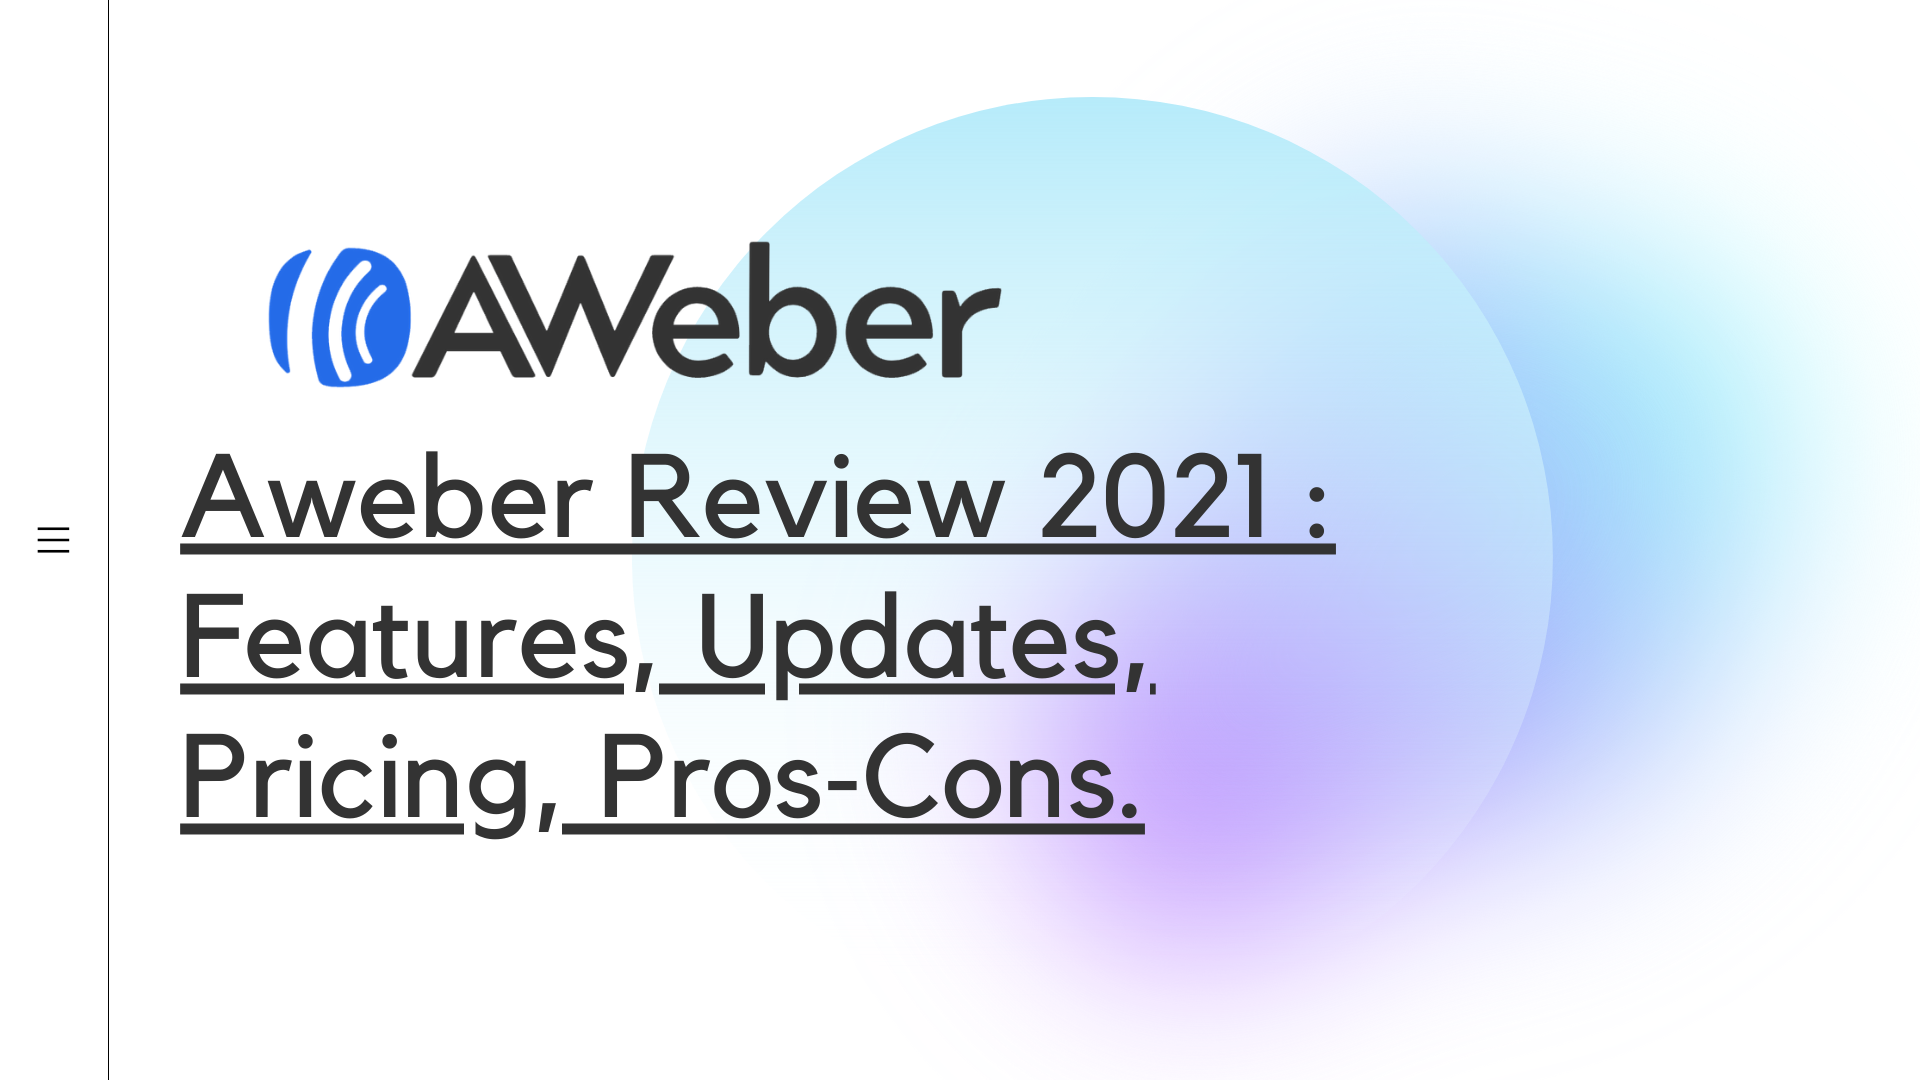 AWeber Review 2021 cover photo